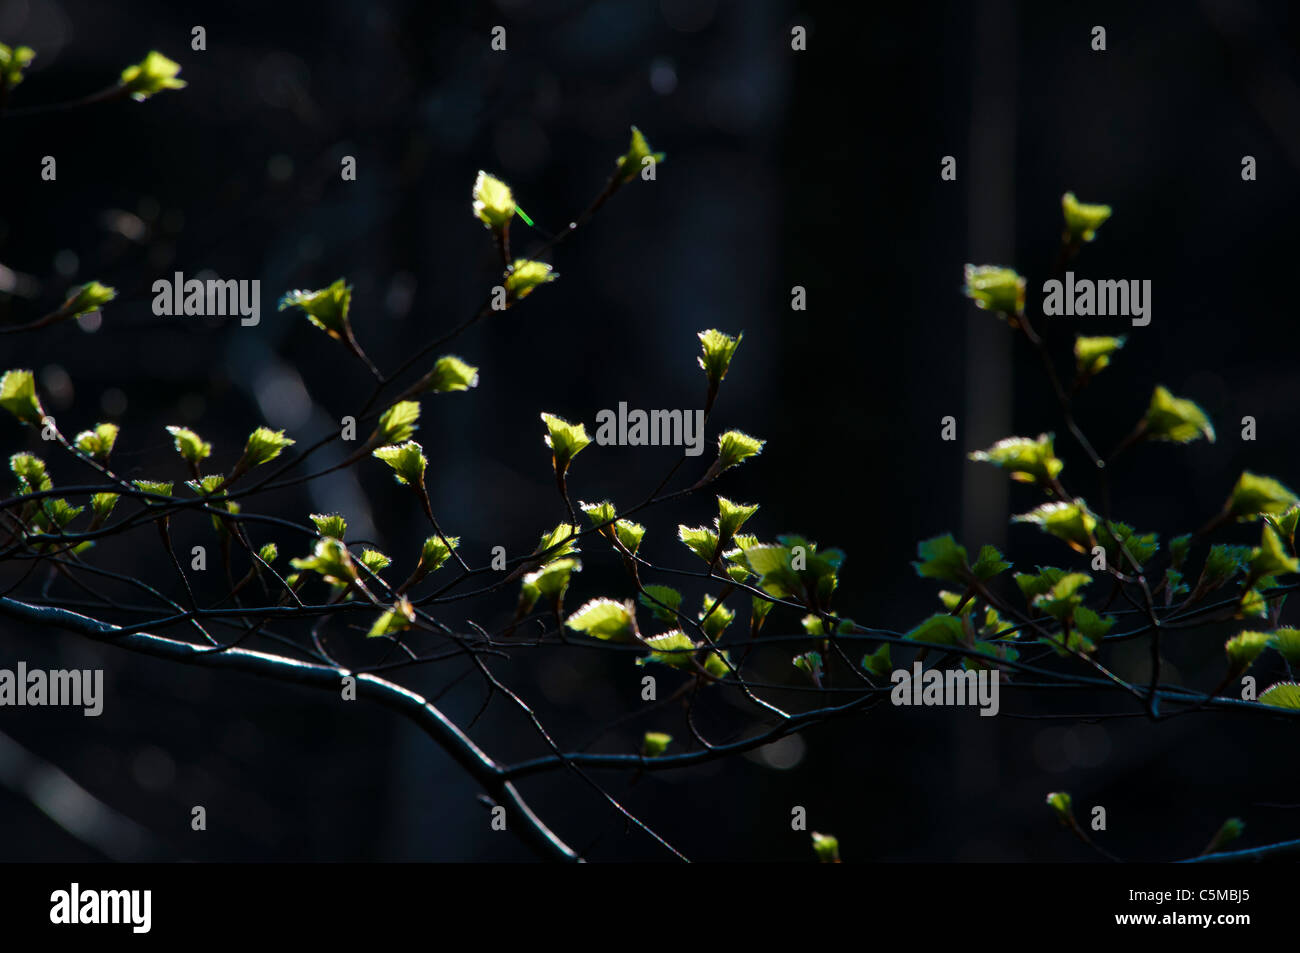 Young shoots of beech, Fagus, in the backlight - Stock Image